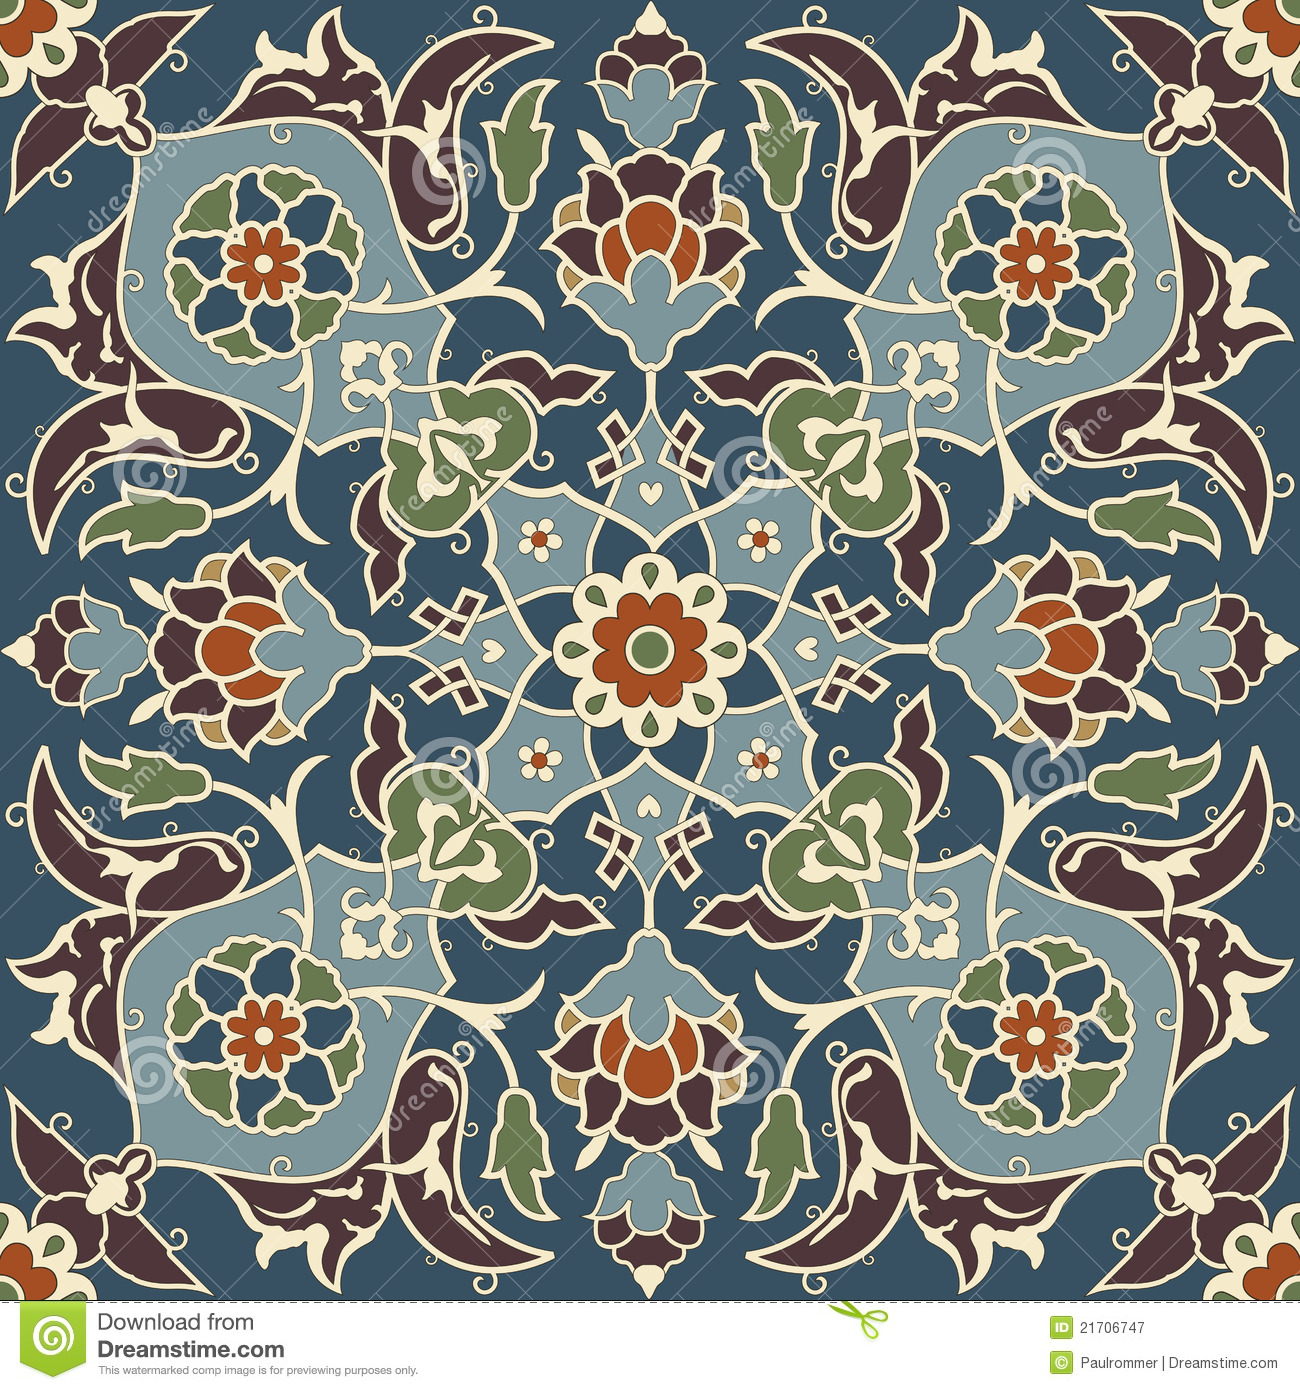 Download Arabesque seamless pattern stock vector. Illustration of background - 21706747